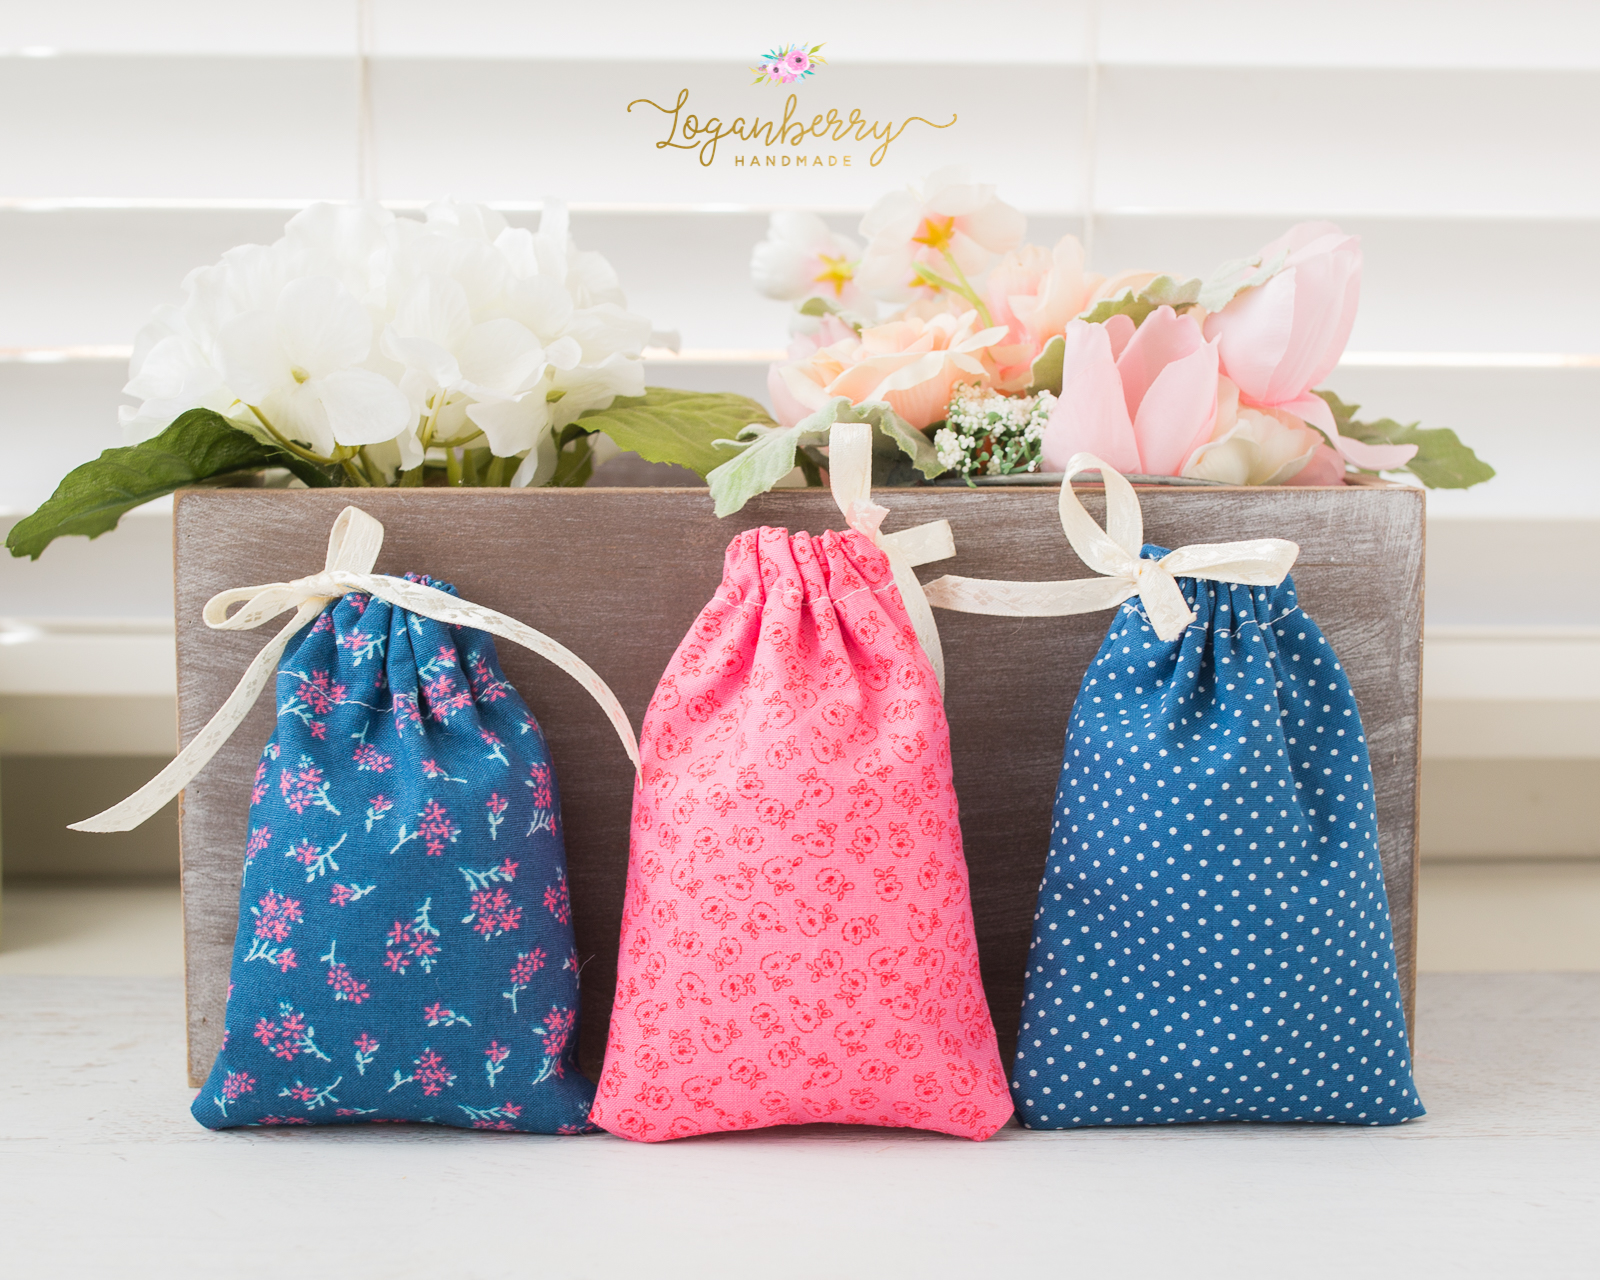 Paper Gift Bags Wholesale 5 Minute Gift Bags Loganberry Handmade